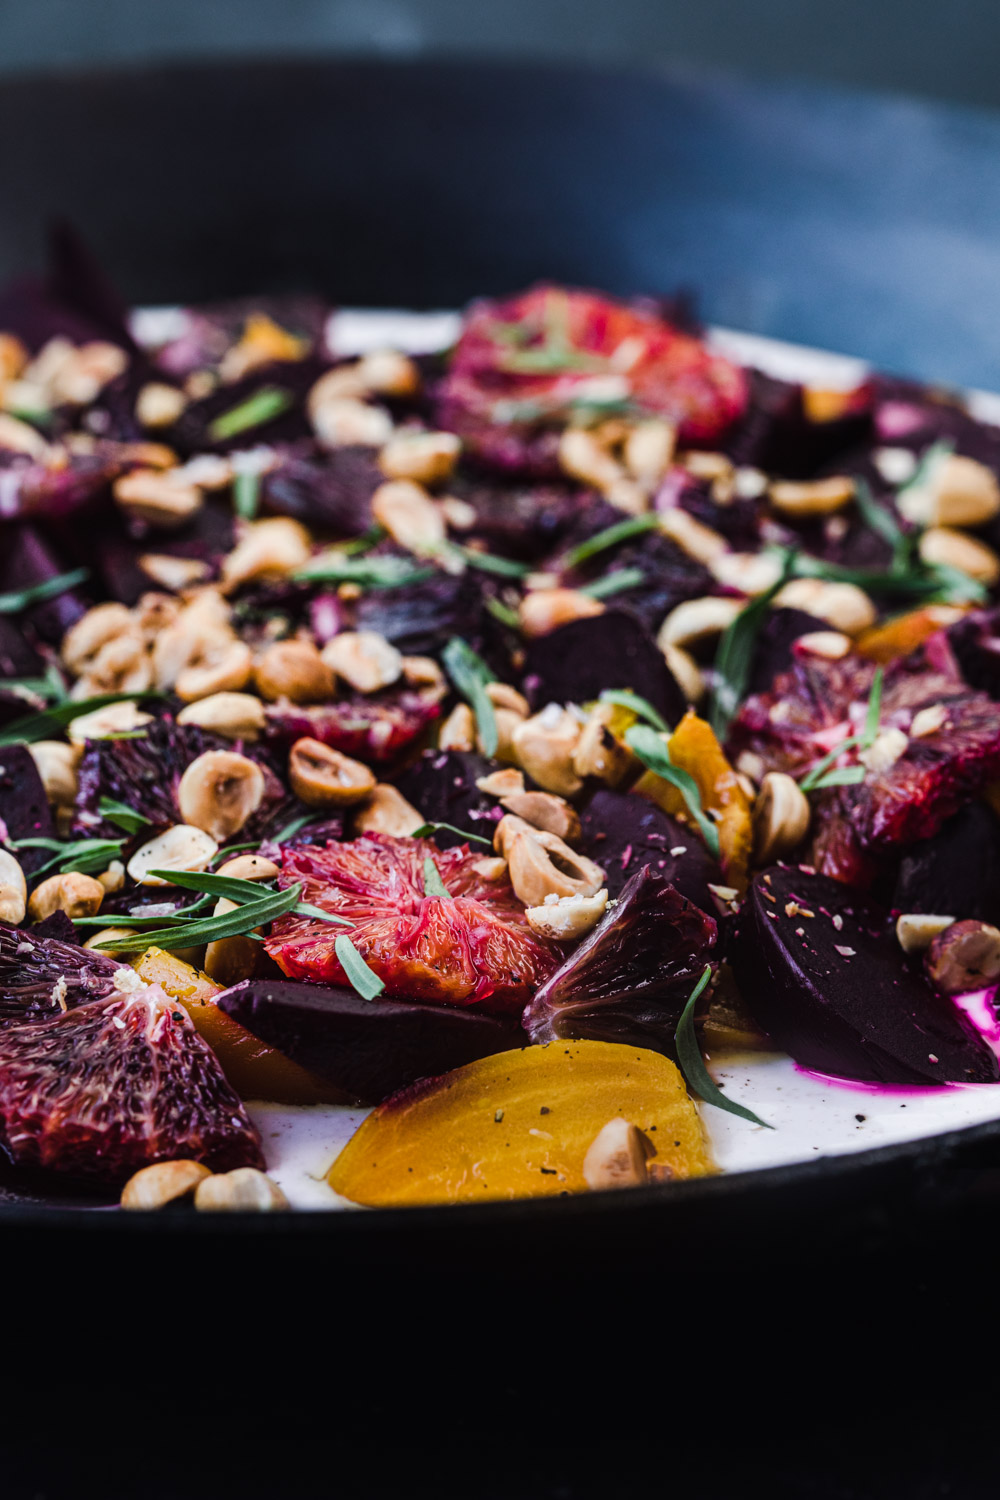 Up close shot of roasted beet salad with blood oranges, on yogurt.